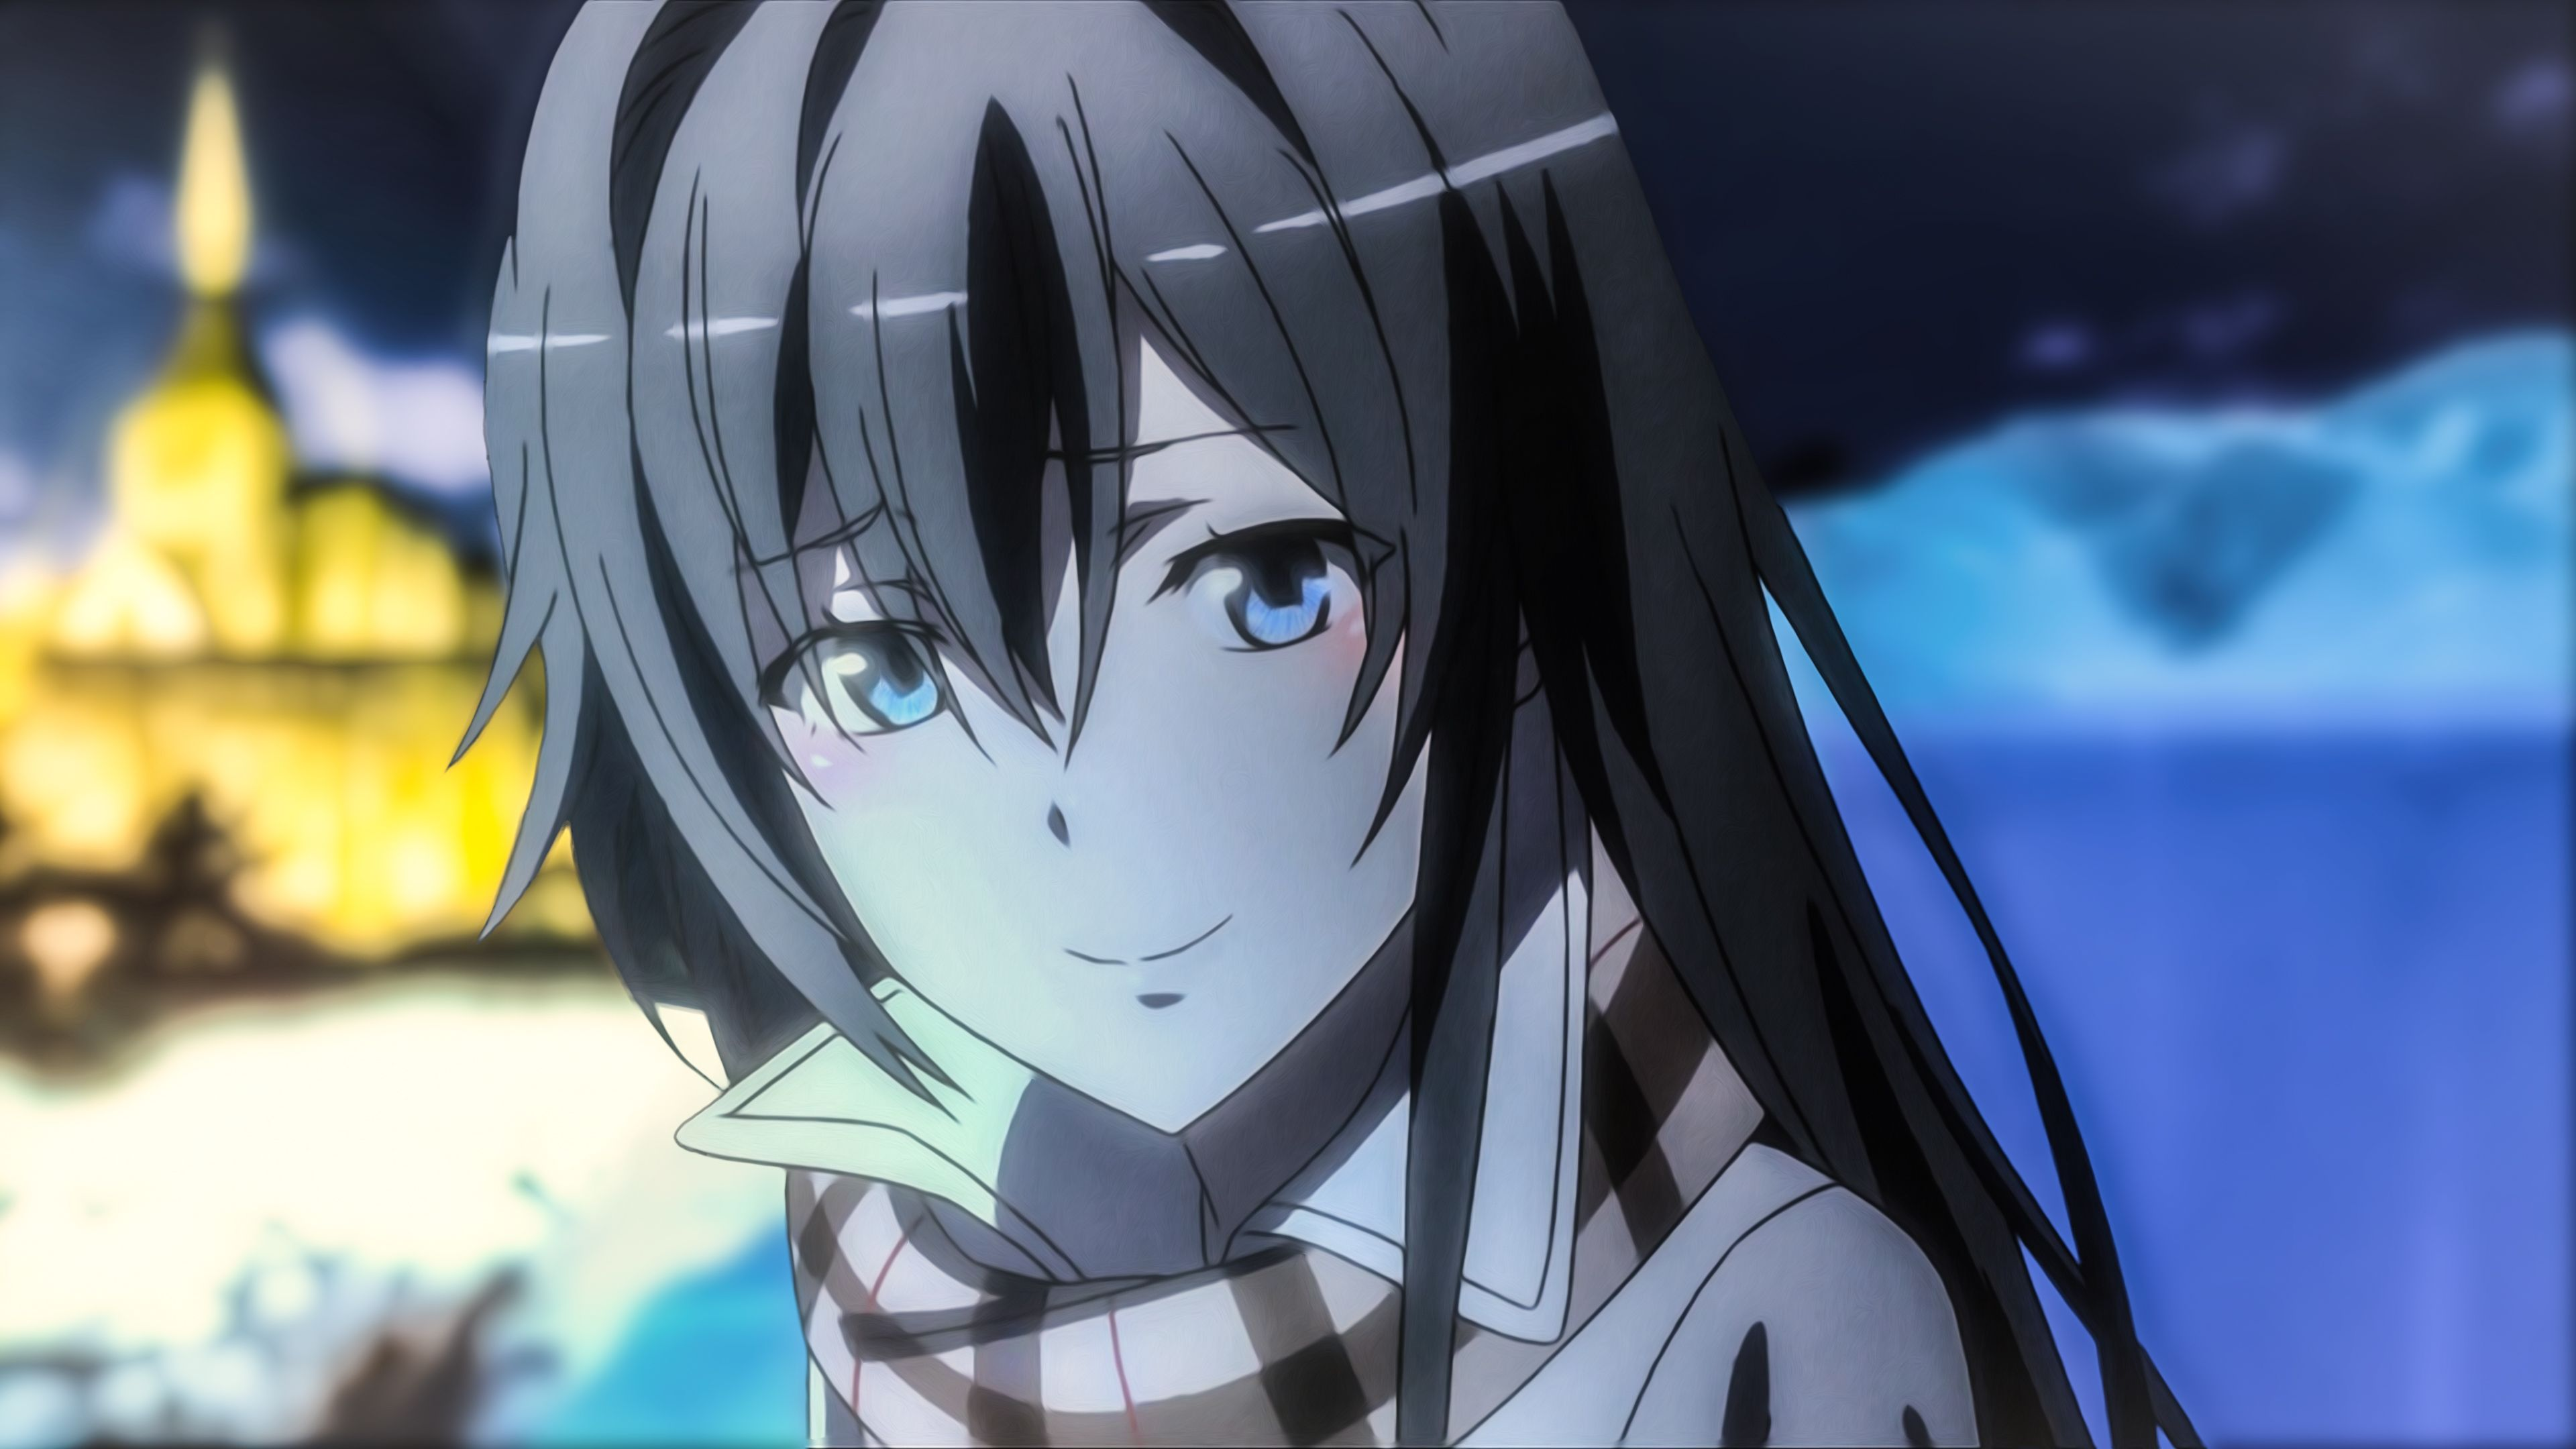 Love comedy Wallpaper : Yukino Yukinoshita UHD Wallpaper (Yahari Ore no Seishun Love comedy wa Machigatteiru. Zoku ...